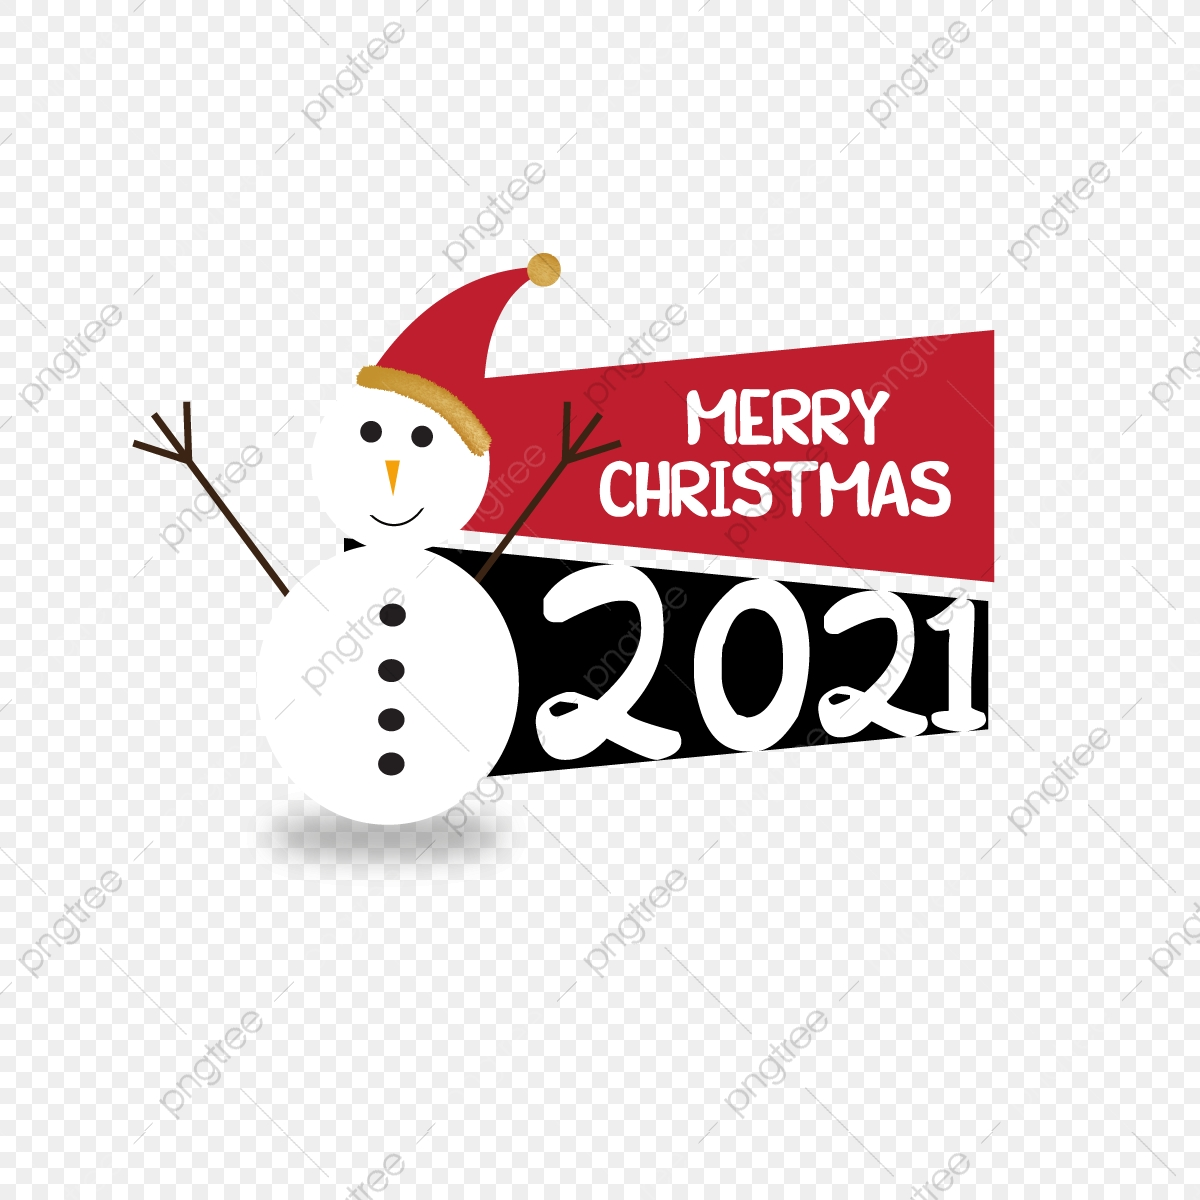 Chances For A White Christmas 2021 Christmas 2021 With White Snowman Quarantine Covid 19 Coronavirus Png And Vector With Transparent Background For Free Download